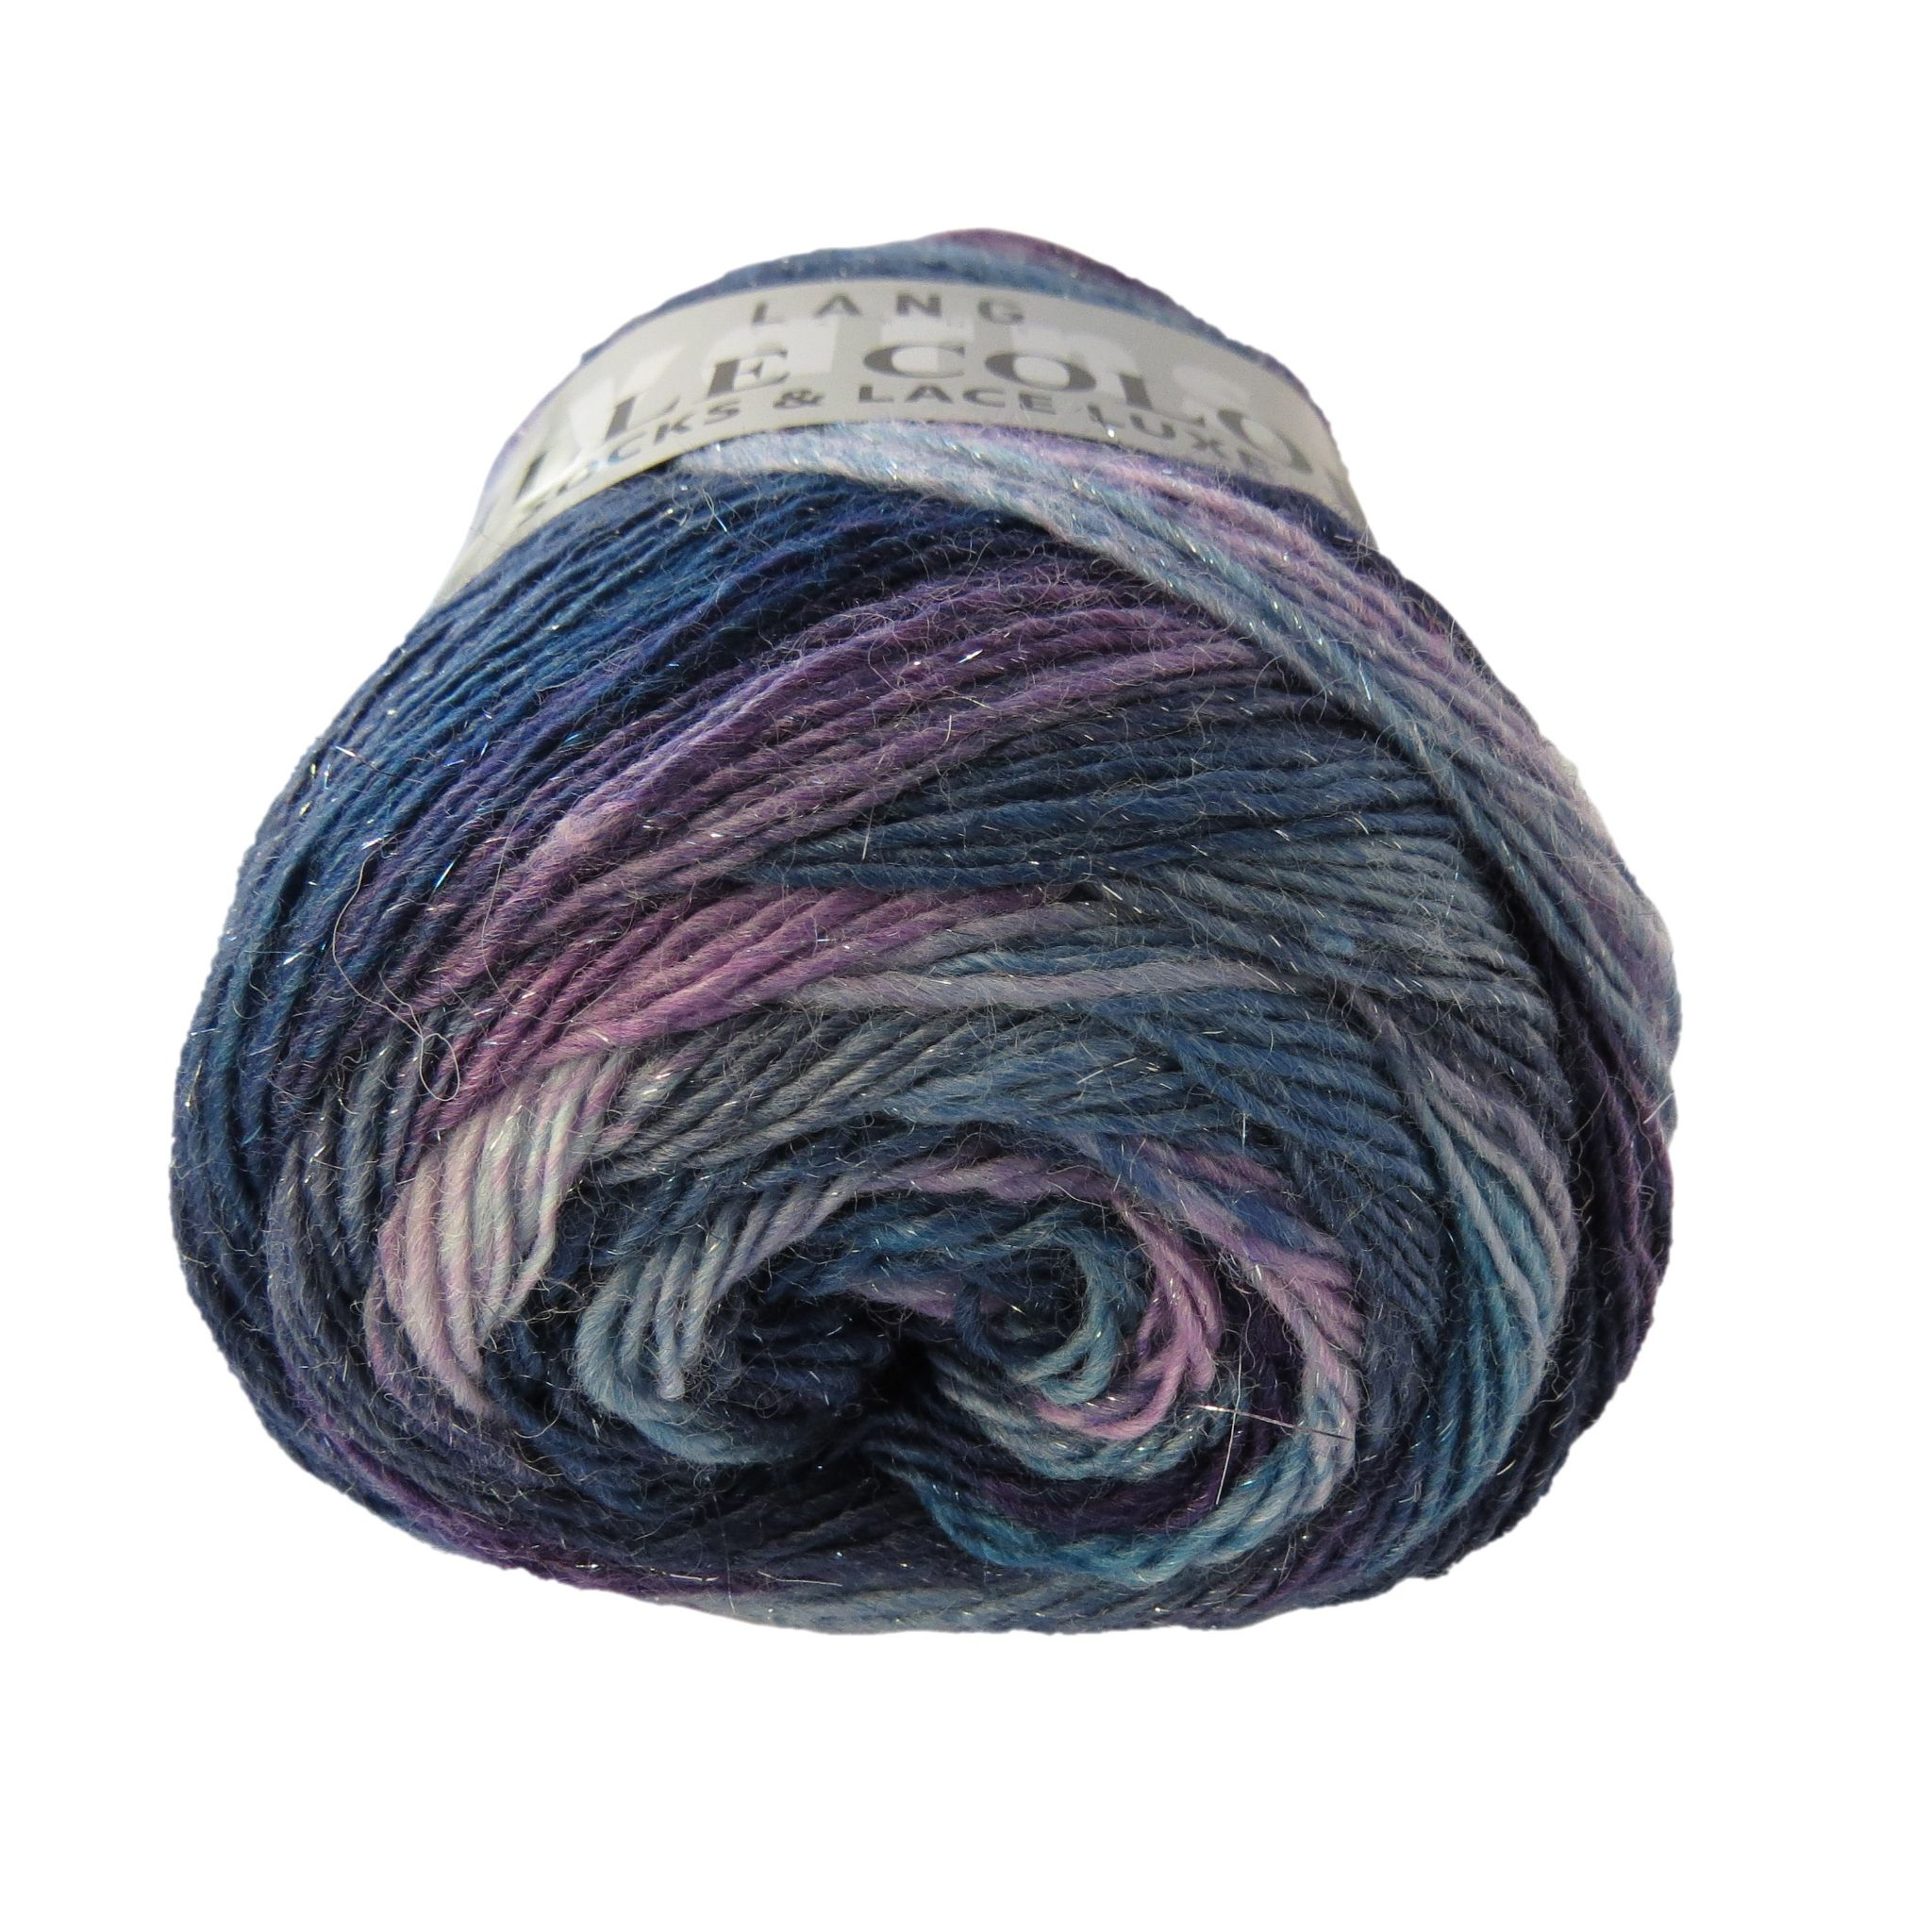 Lang Yarns MILLE COLORI Socks & Lace LUXE 25